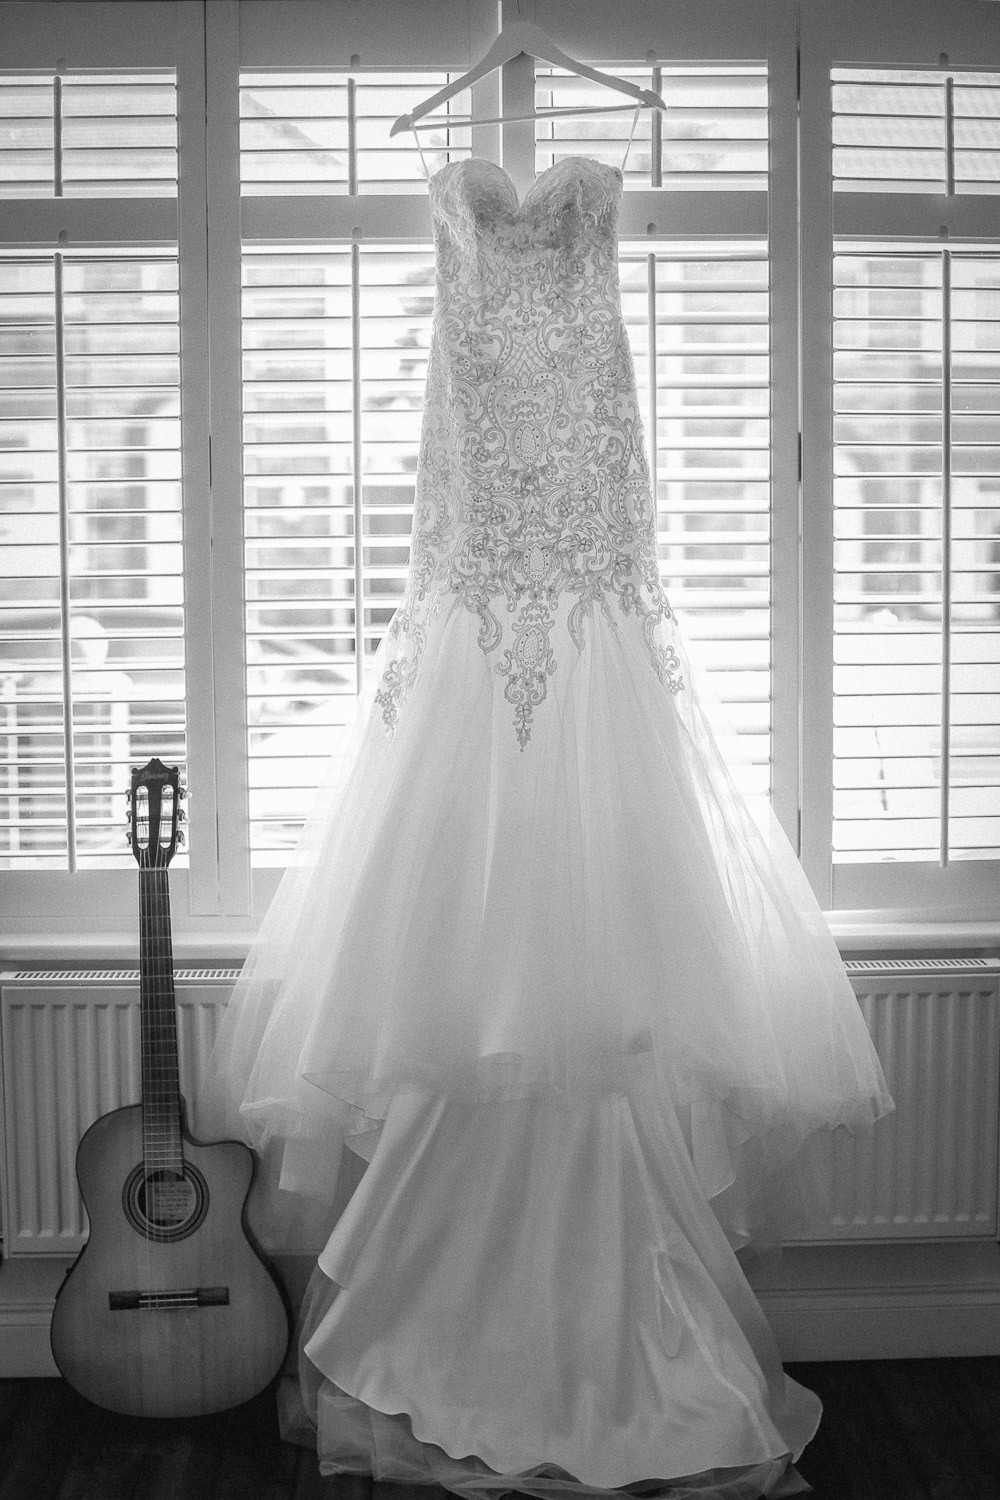 More Lee sweetheart fishtail Wedding dress and guitar on wedding morning